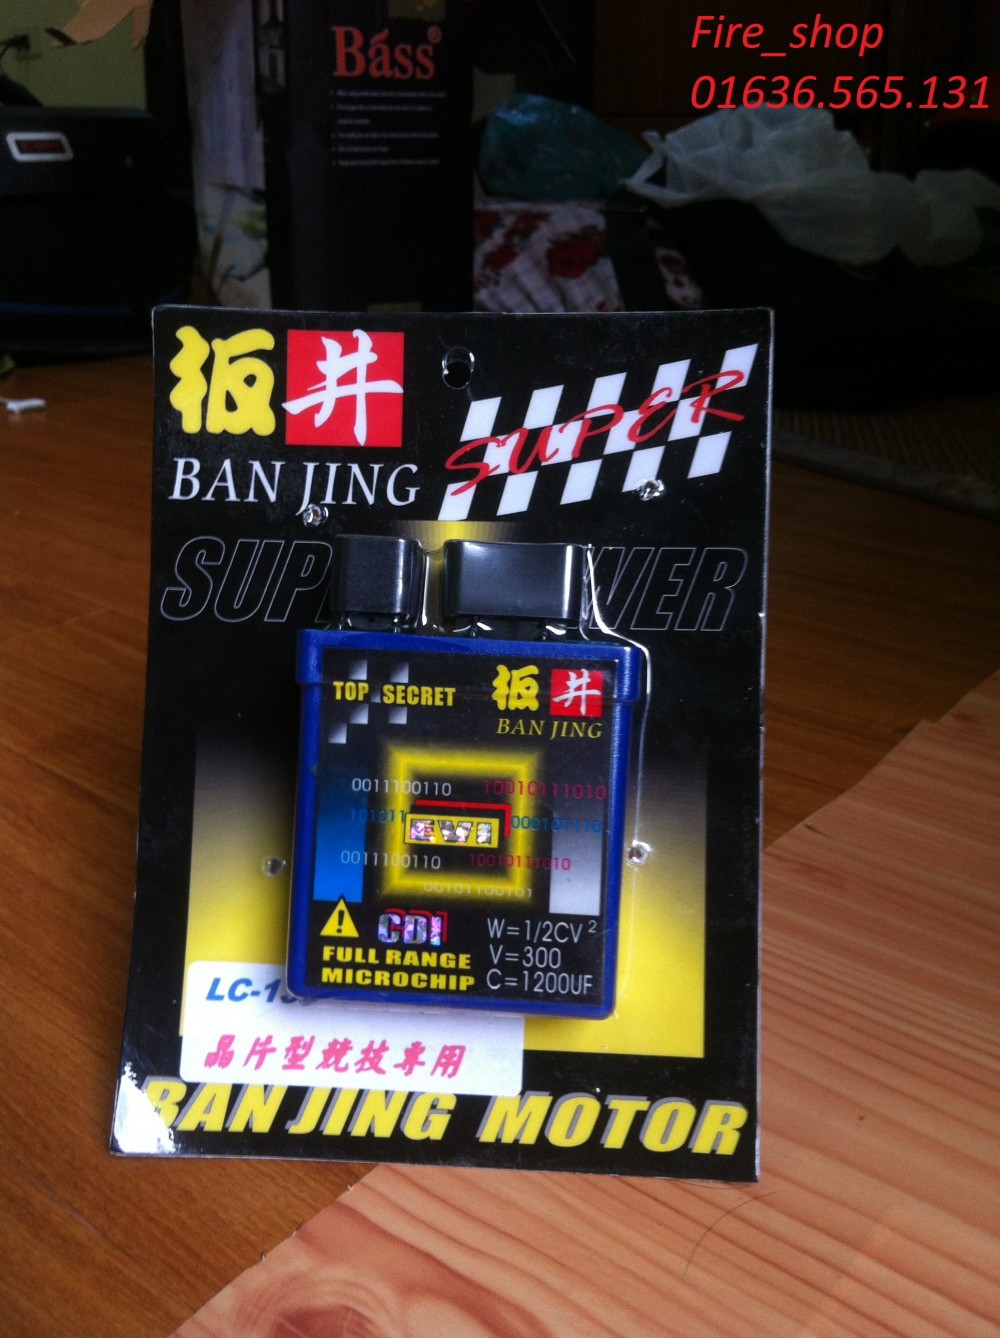 IC banjing horse power racing tim cho Exciter Dream Wave Fire_shop - 2